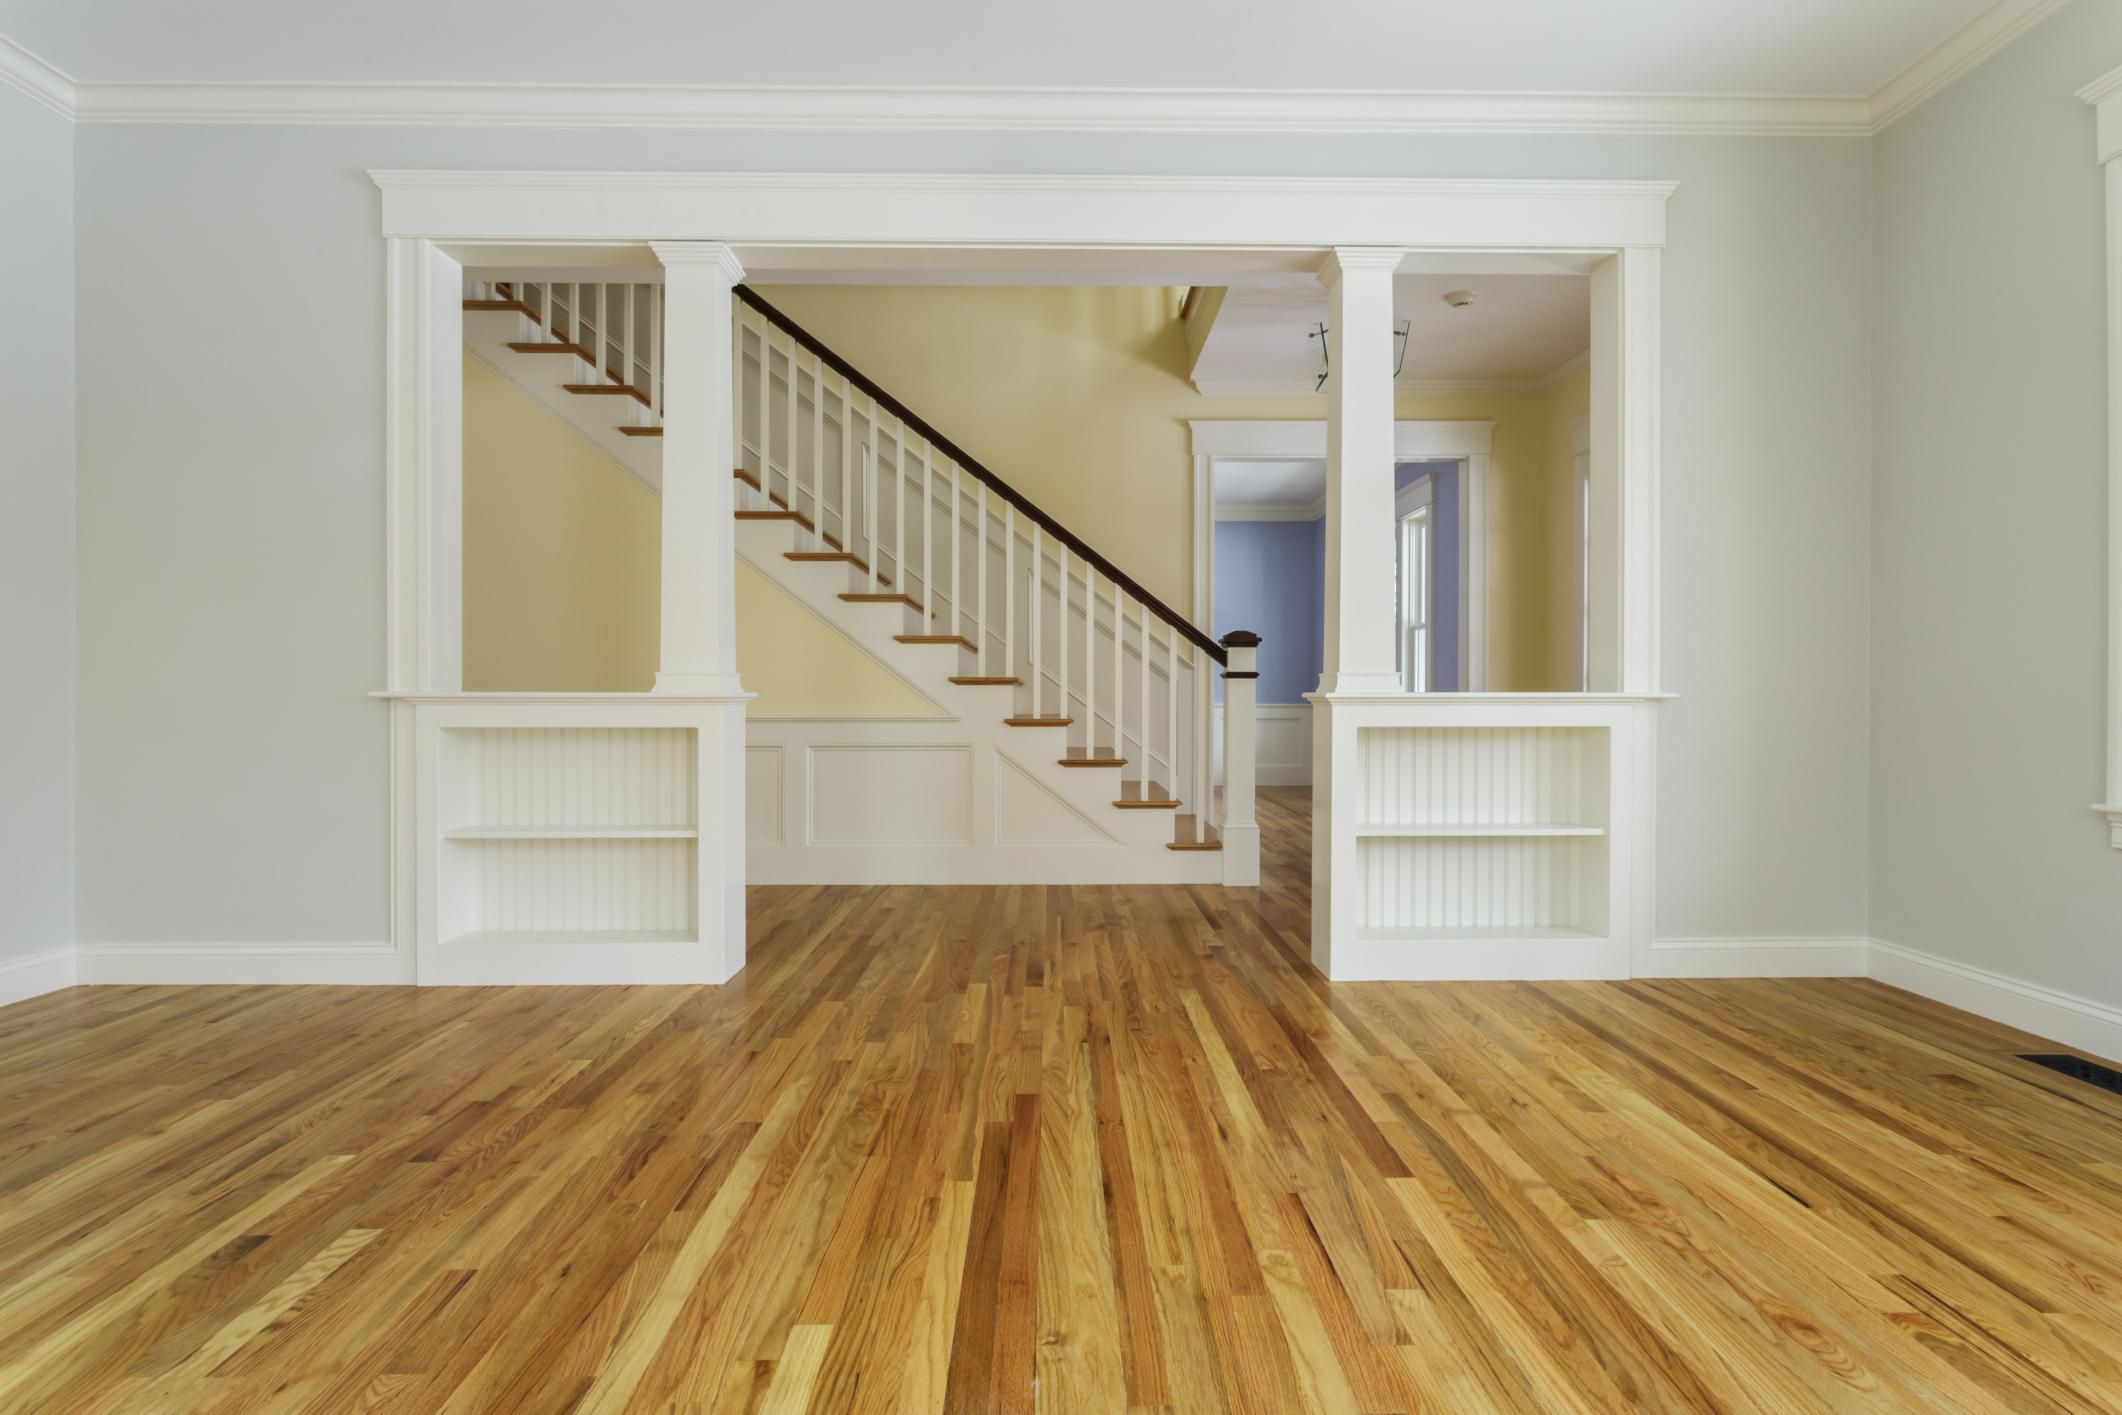 hardwood floor cleaning equipment of guide to solid hardwood floors pertaining to 168686571 56a49f213df78cf772834e24